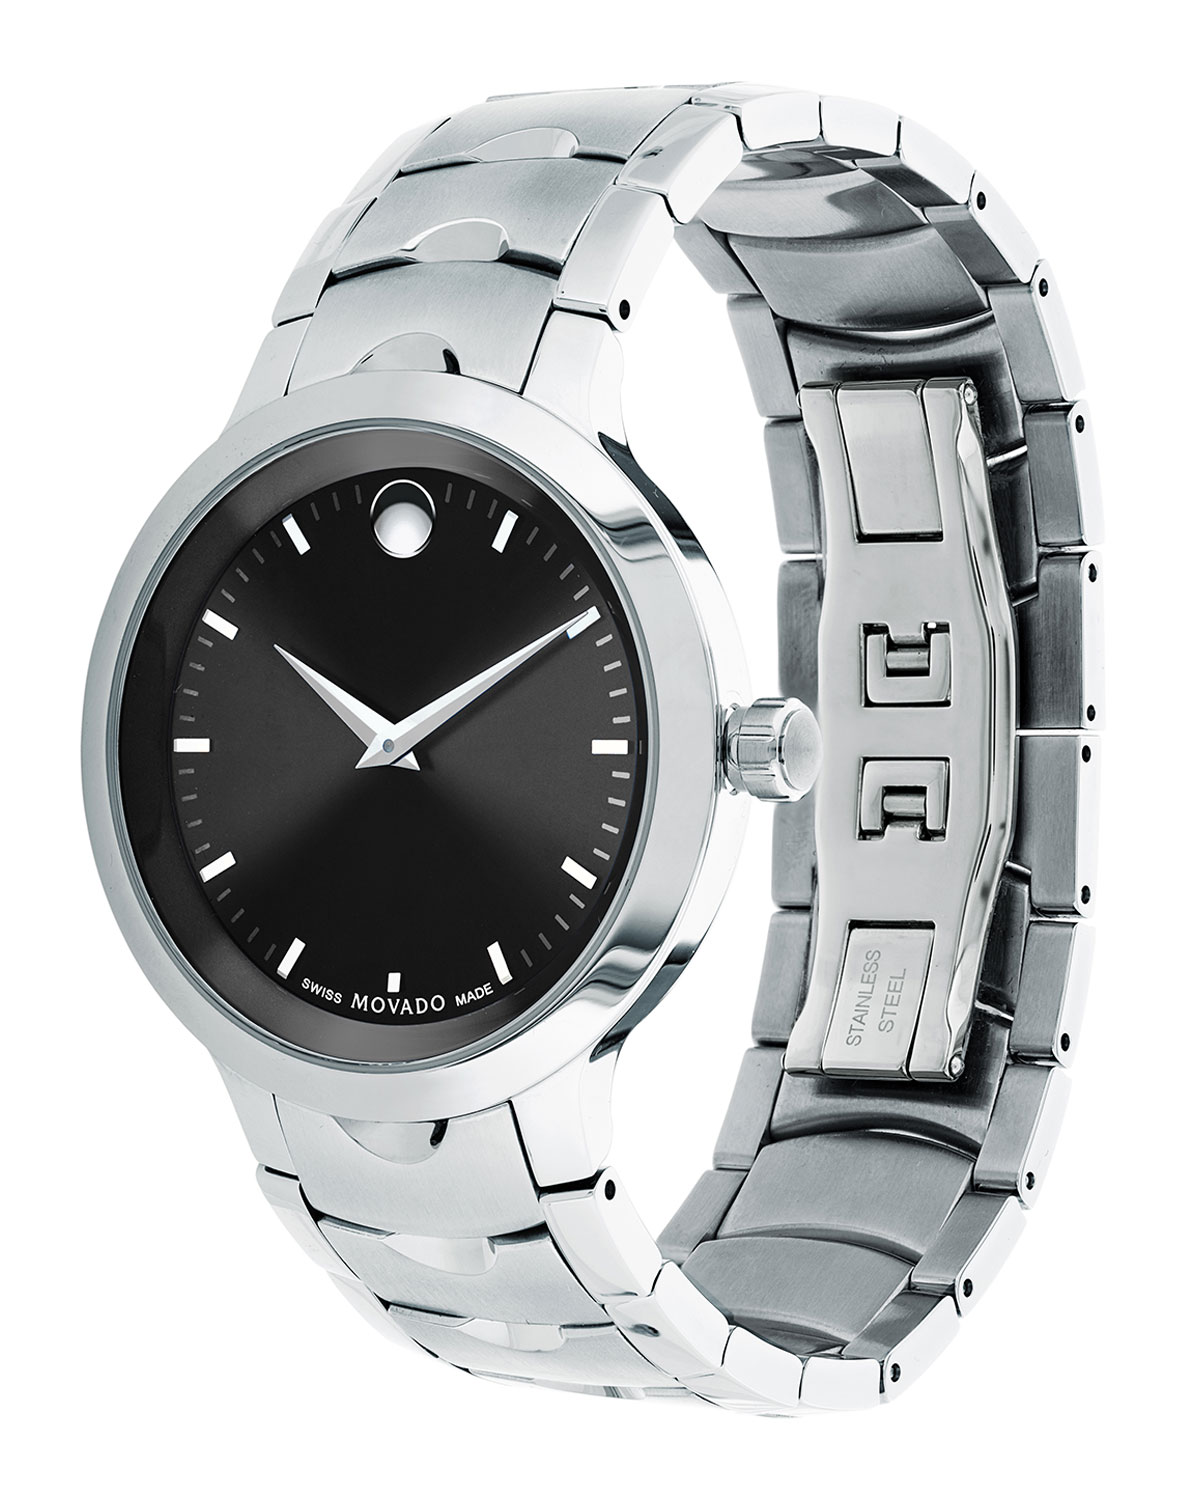 luno watches watch movado youtube reloj